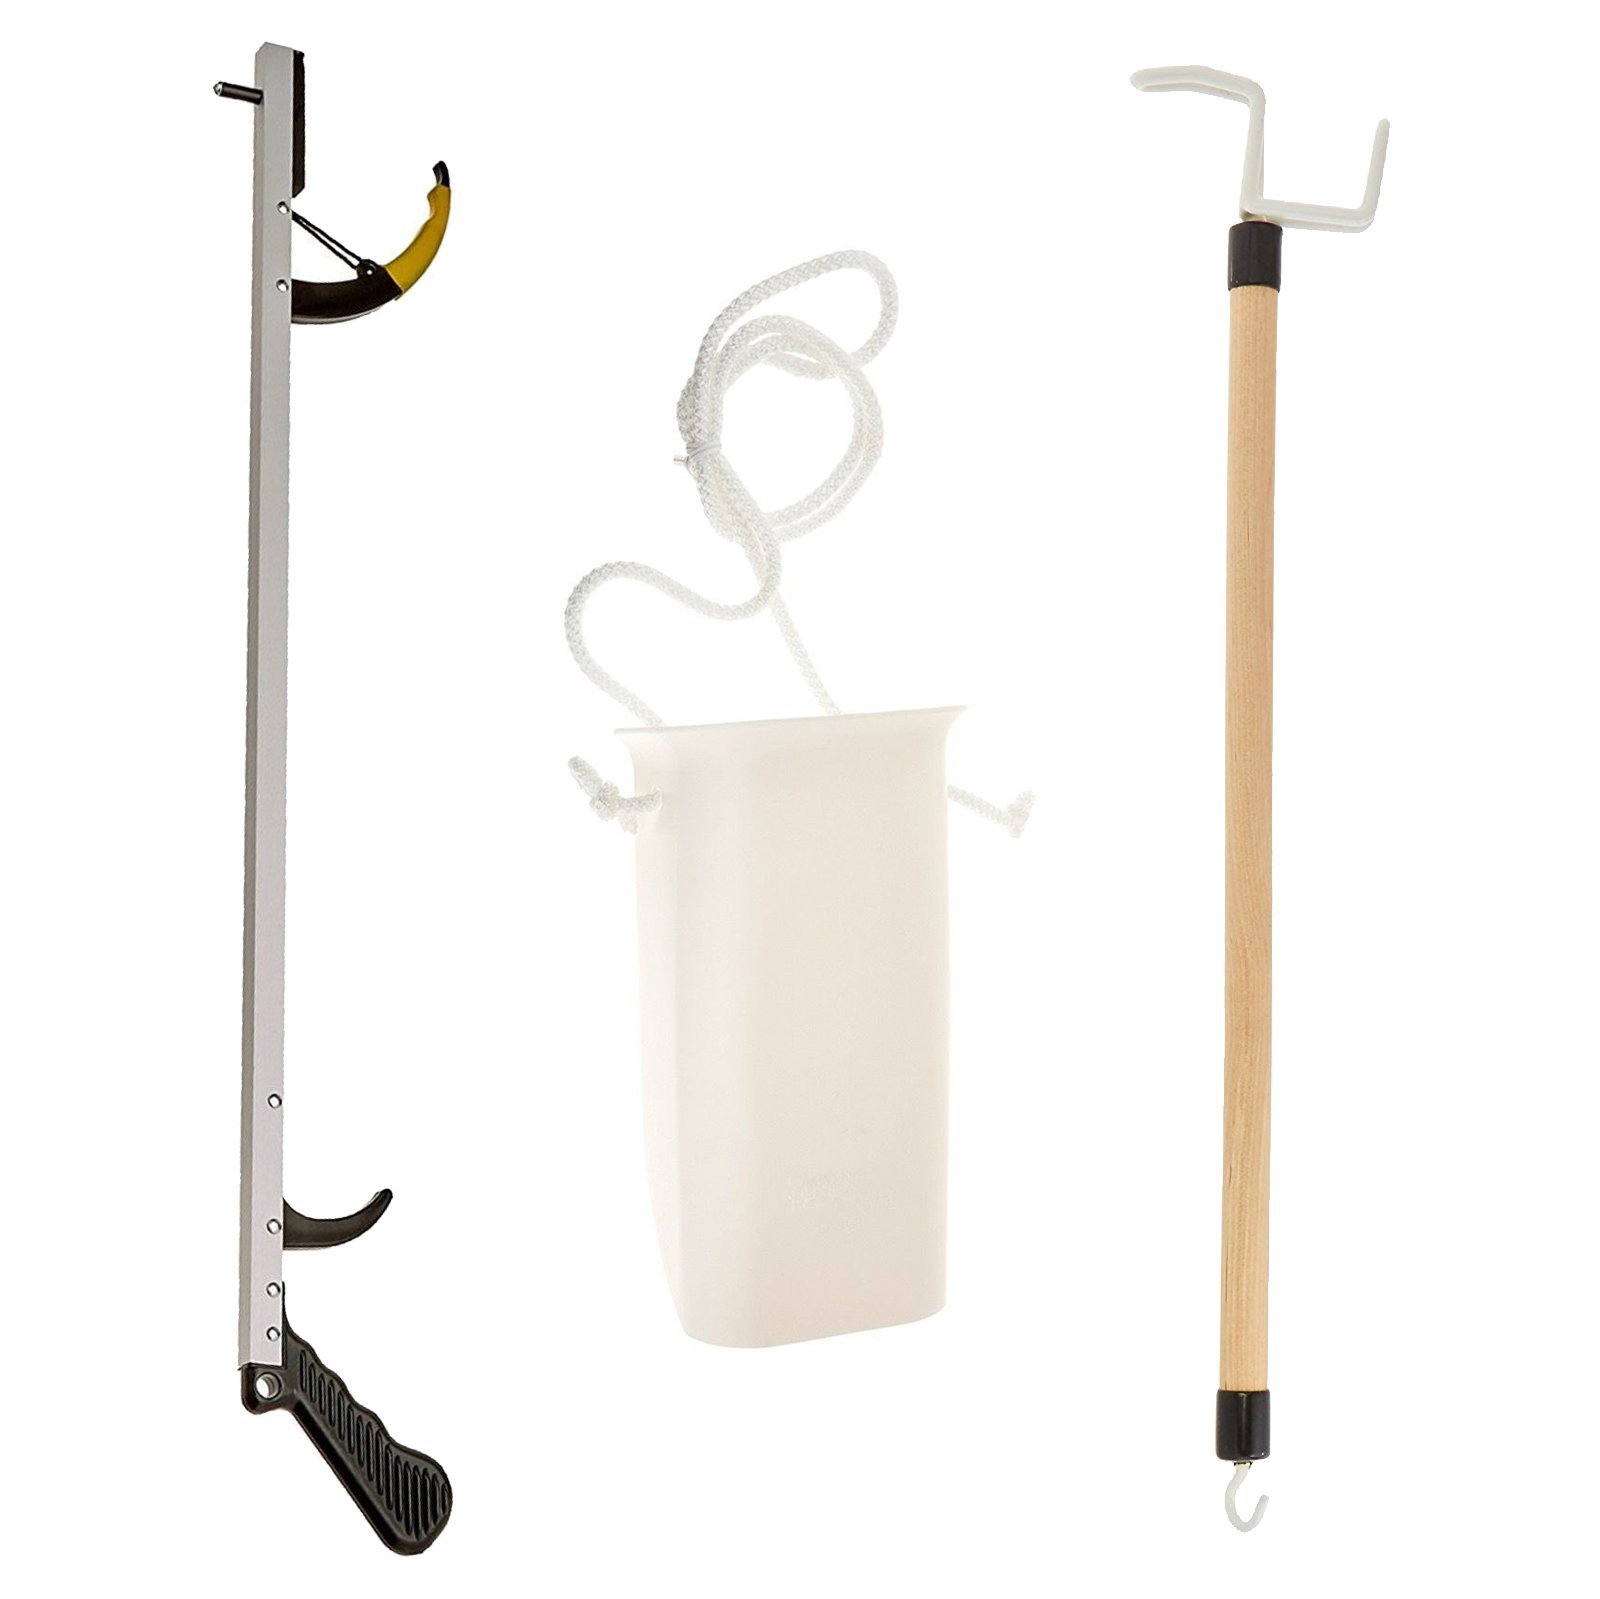 Sammons Preston Assistive Device Kit 5, Includes 26'' SPR Reacher, Wide Sock Aid & 26'' Dressing Stick, Adaptive Dressing & Independent Daily Living Aid for Those with Limited Reaching Ability